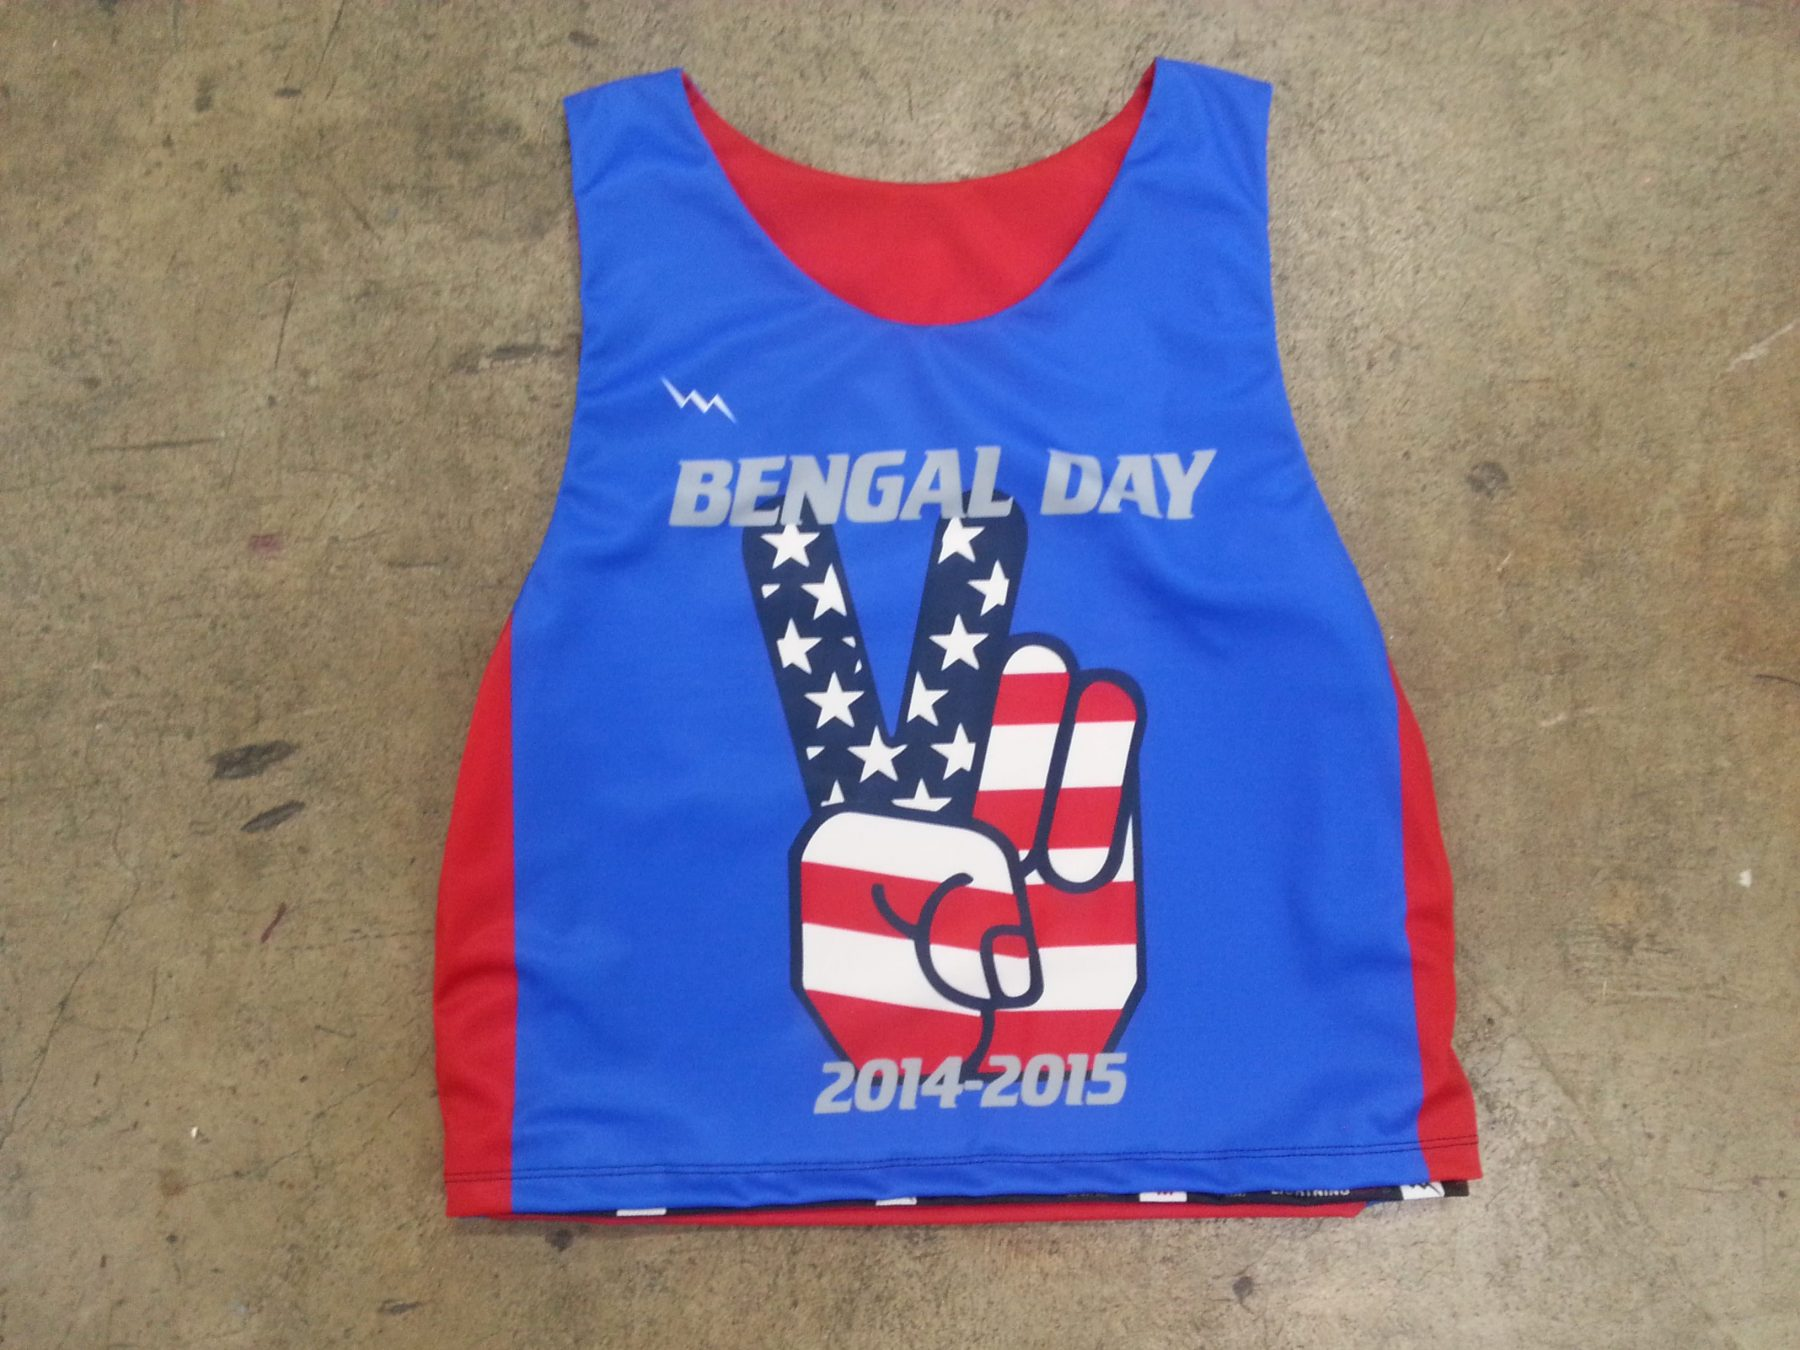 bengal day pinnies